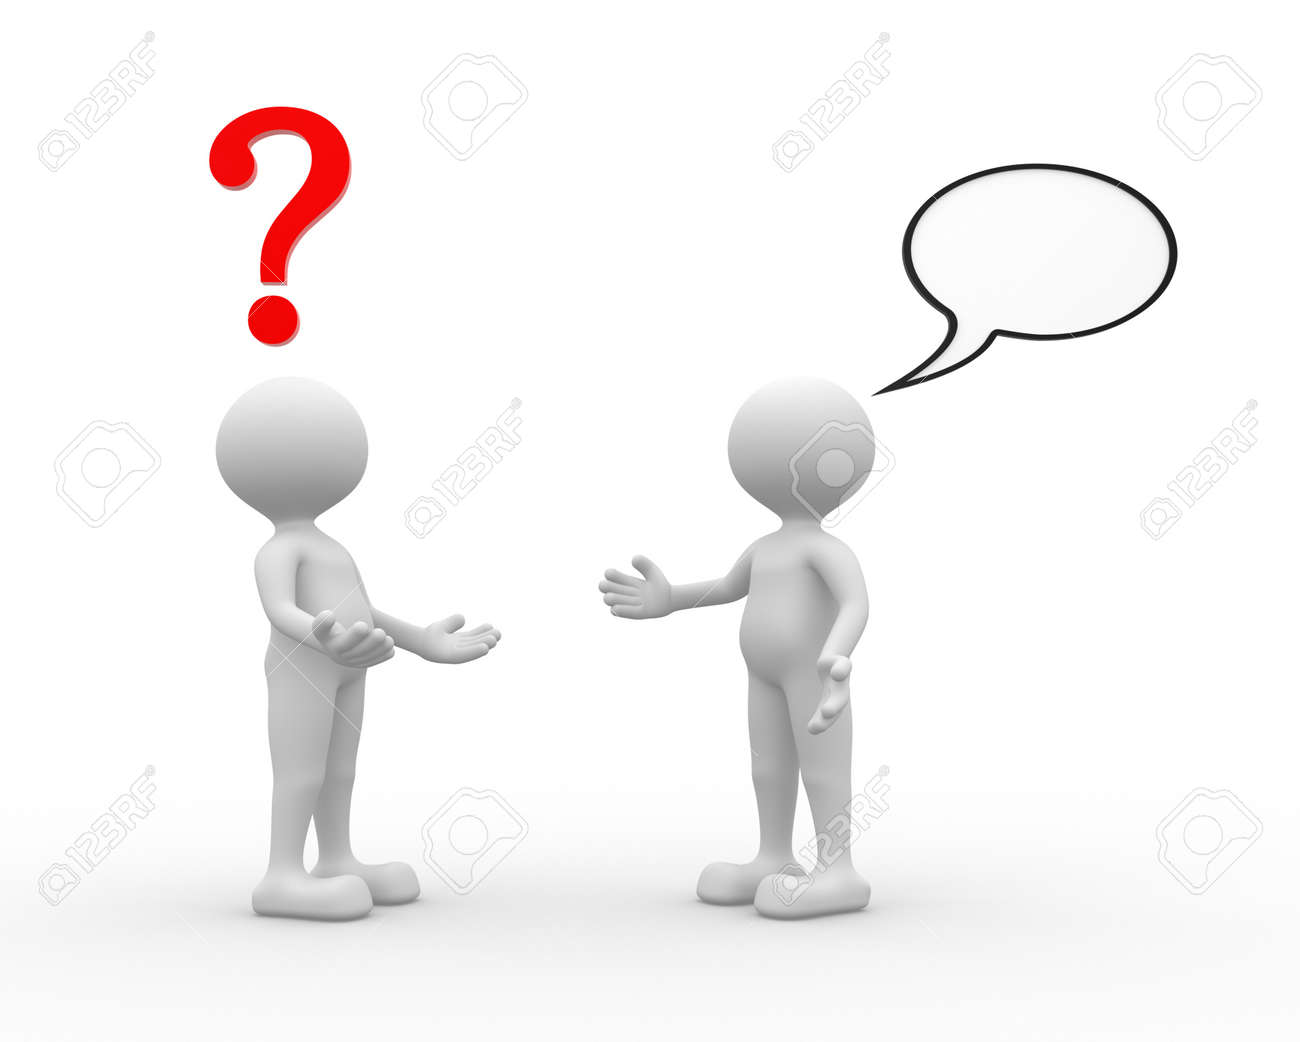 hight resolution of 3d people man person talking arguing question mark and blank bubble stock